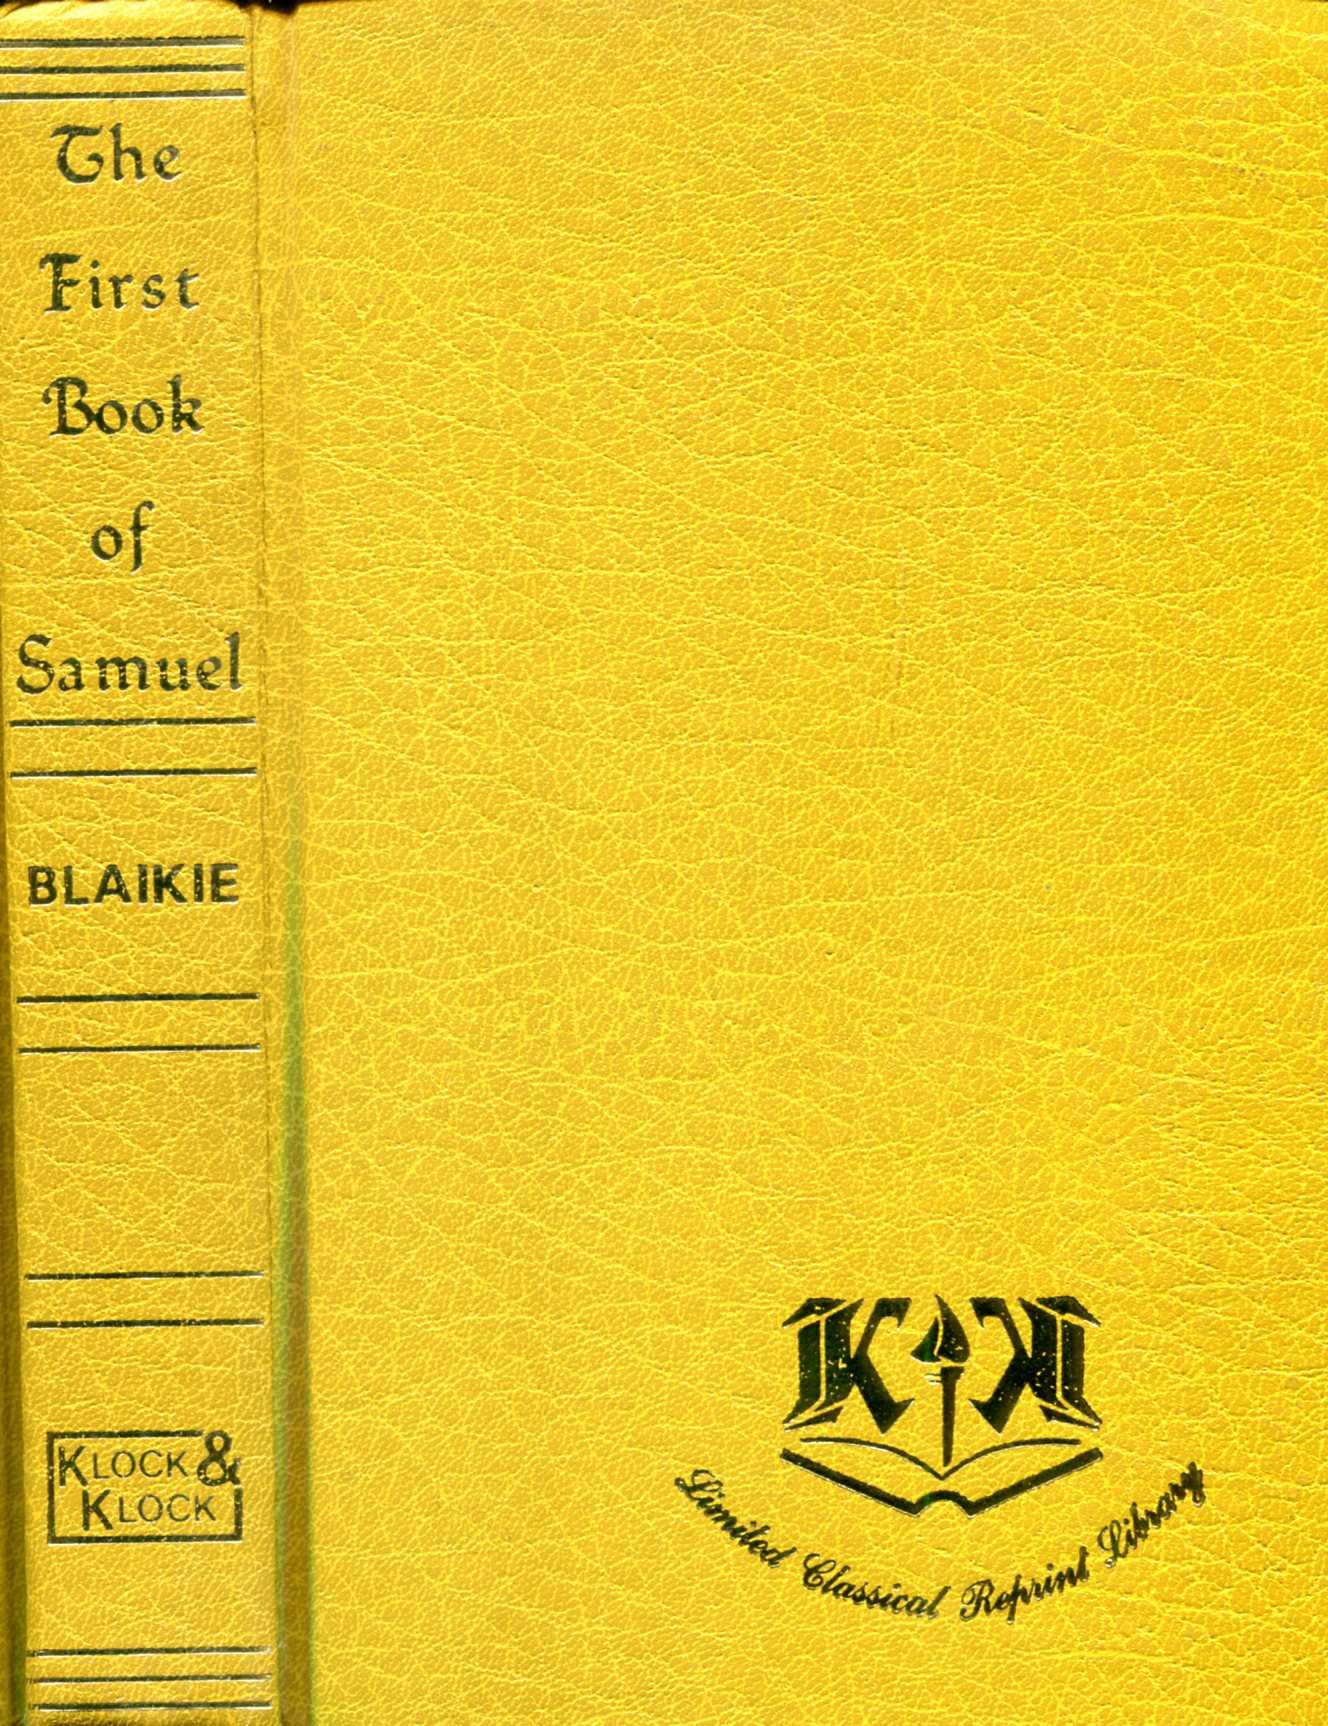 Image for The First Book of Samuel (Klock and Klock Limited Classical Reprint Library)